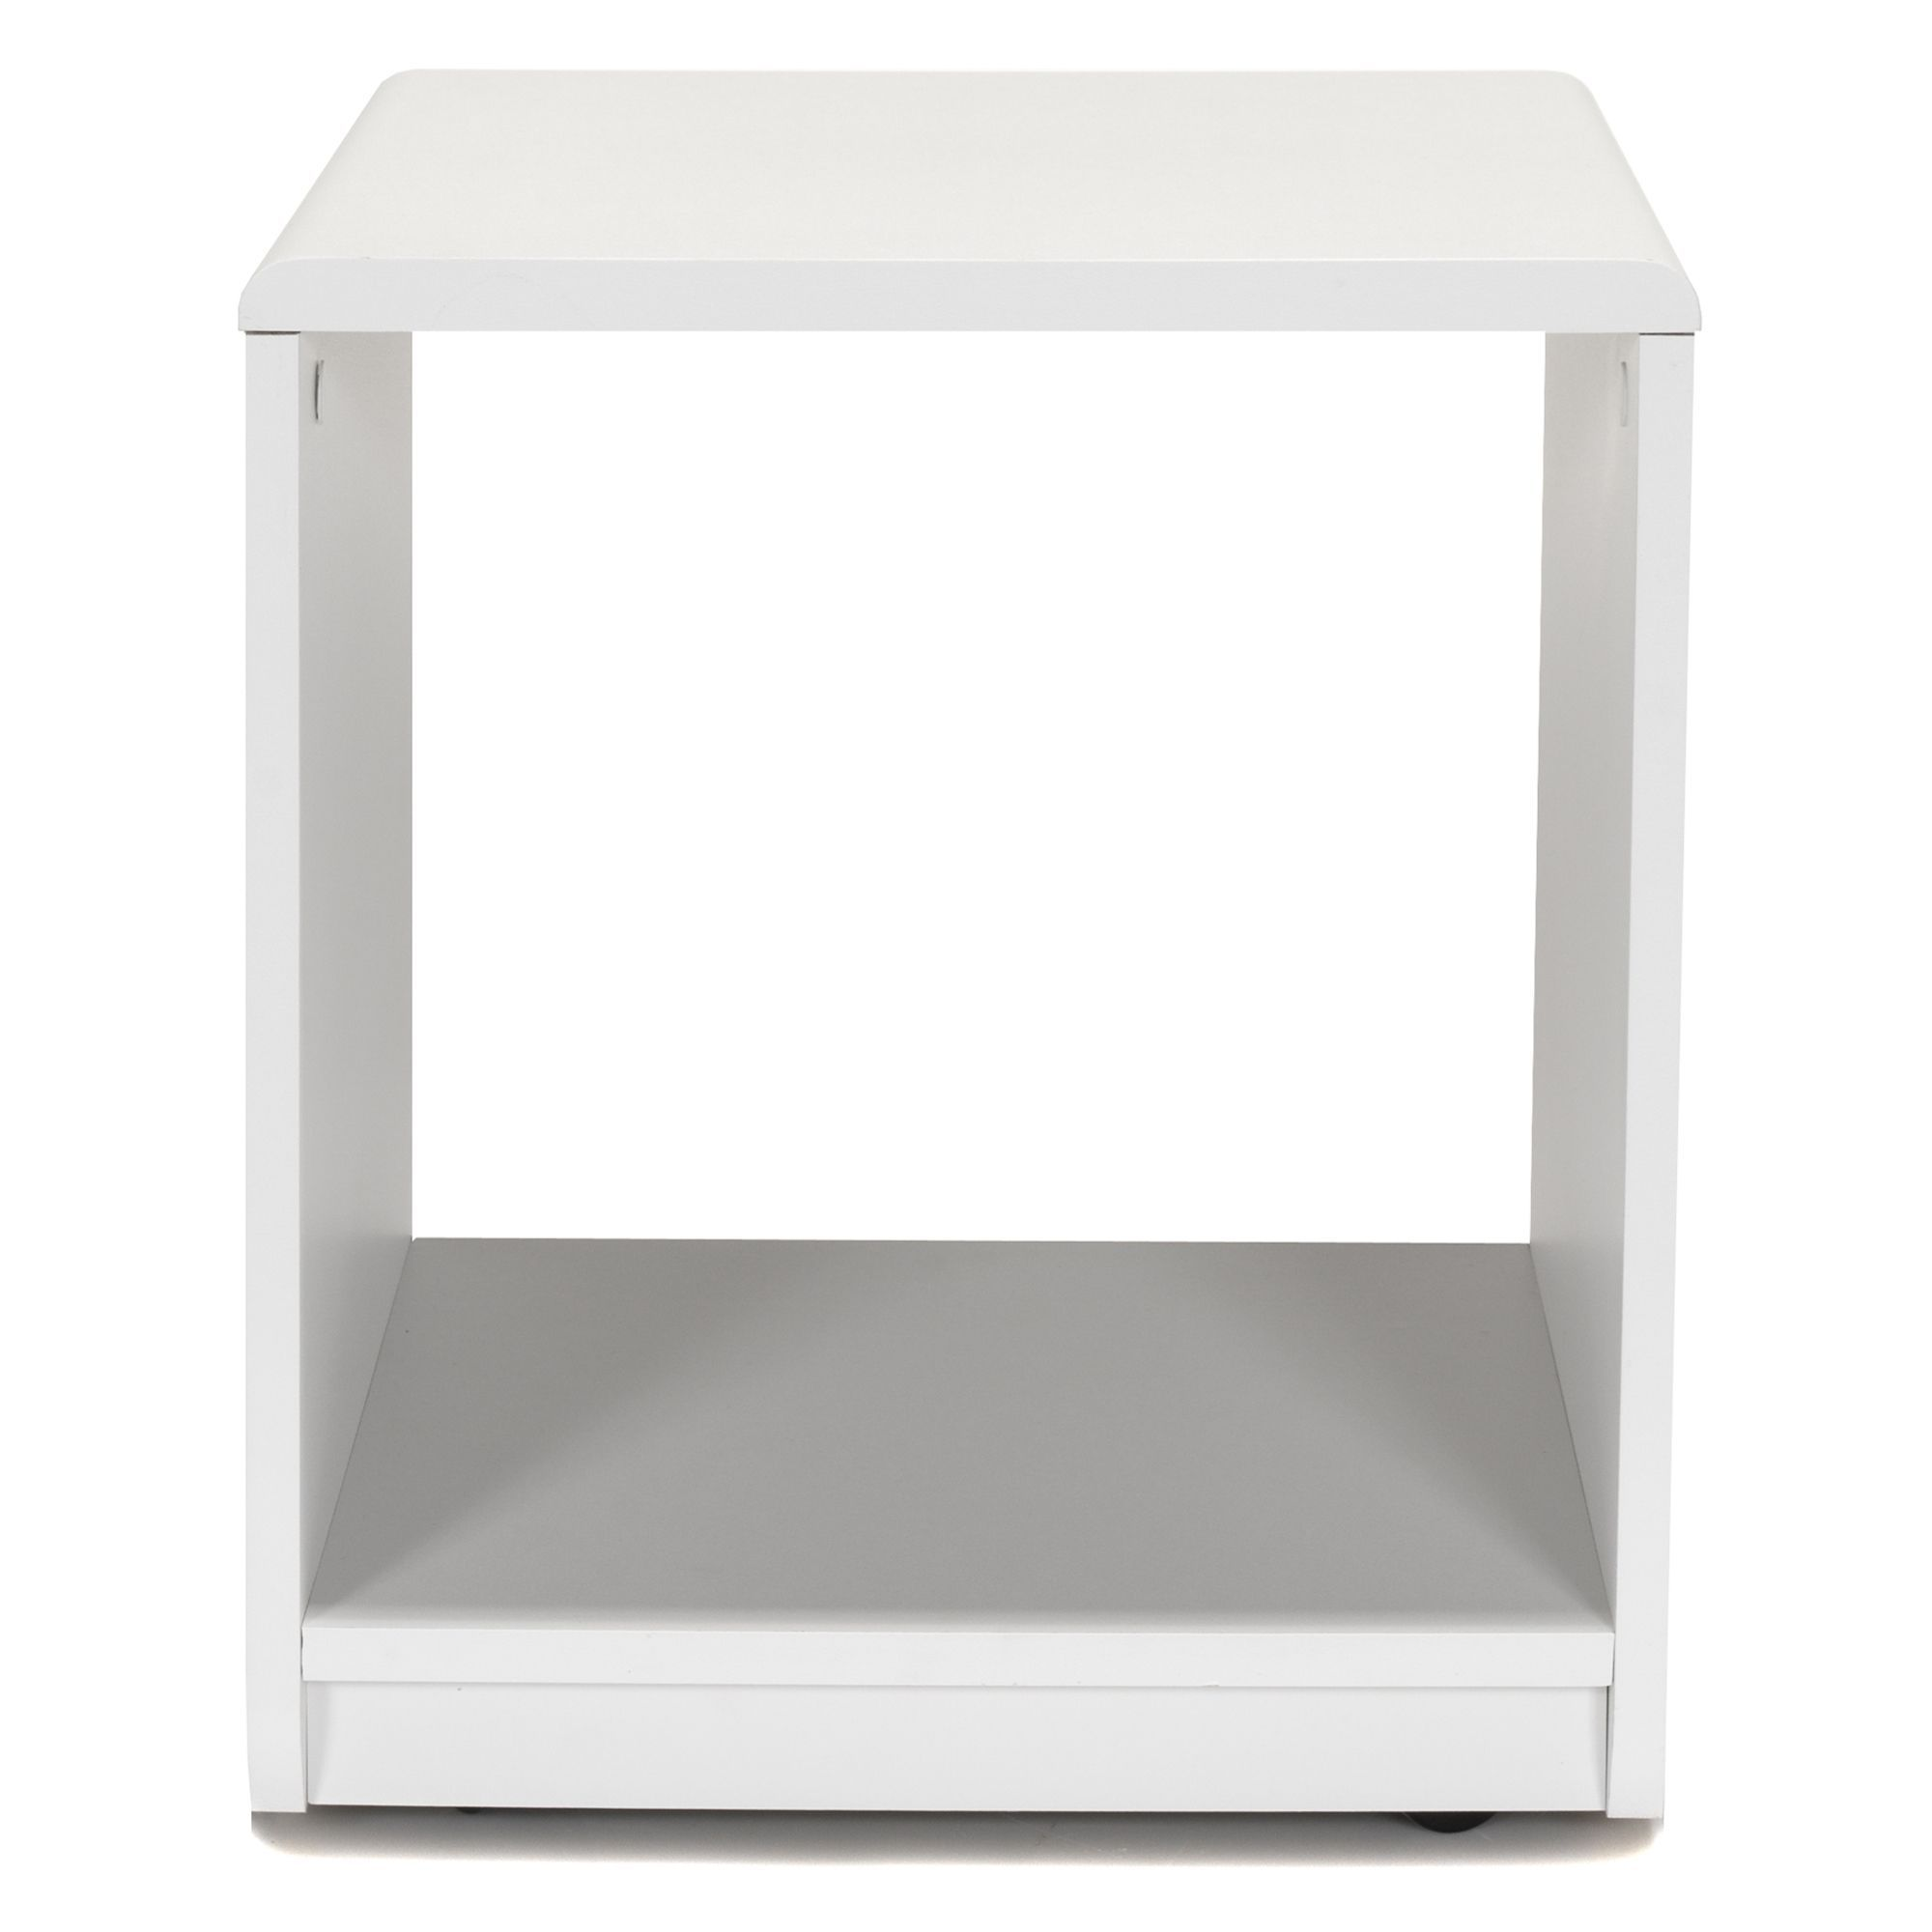 Table De Nuit Alinea Interesting Chevet Forme Cube Blanc Reversible Argent Cool